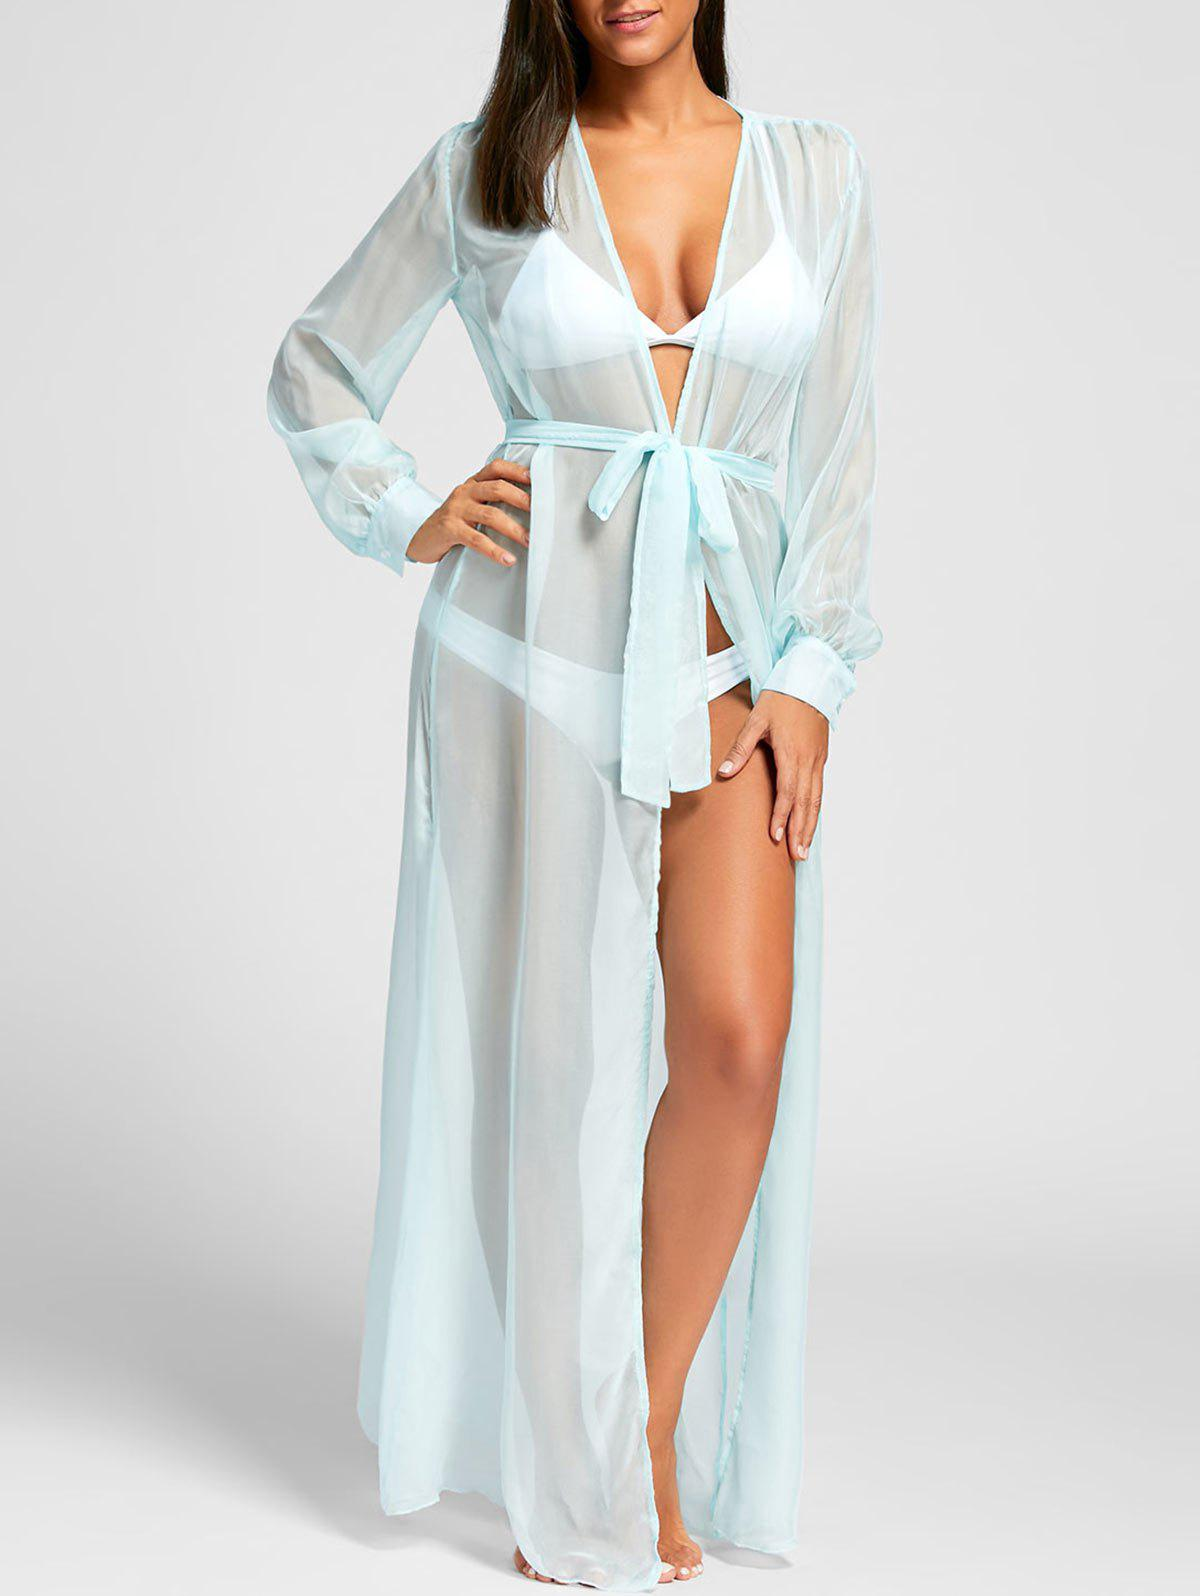 Flowy Maxi Cover Up Wrap Dress - Bleu clair XL